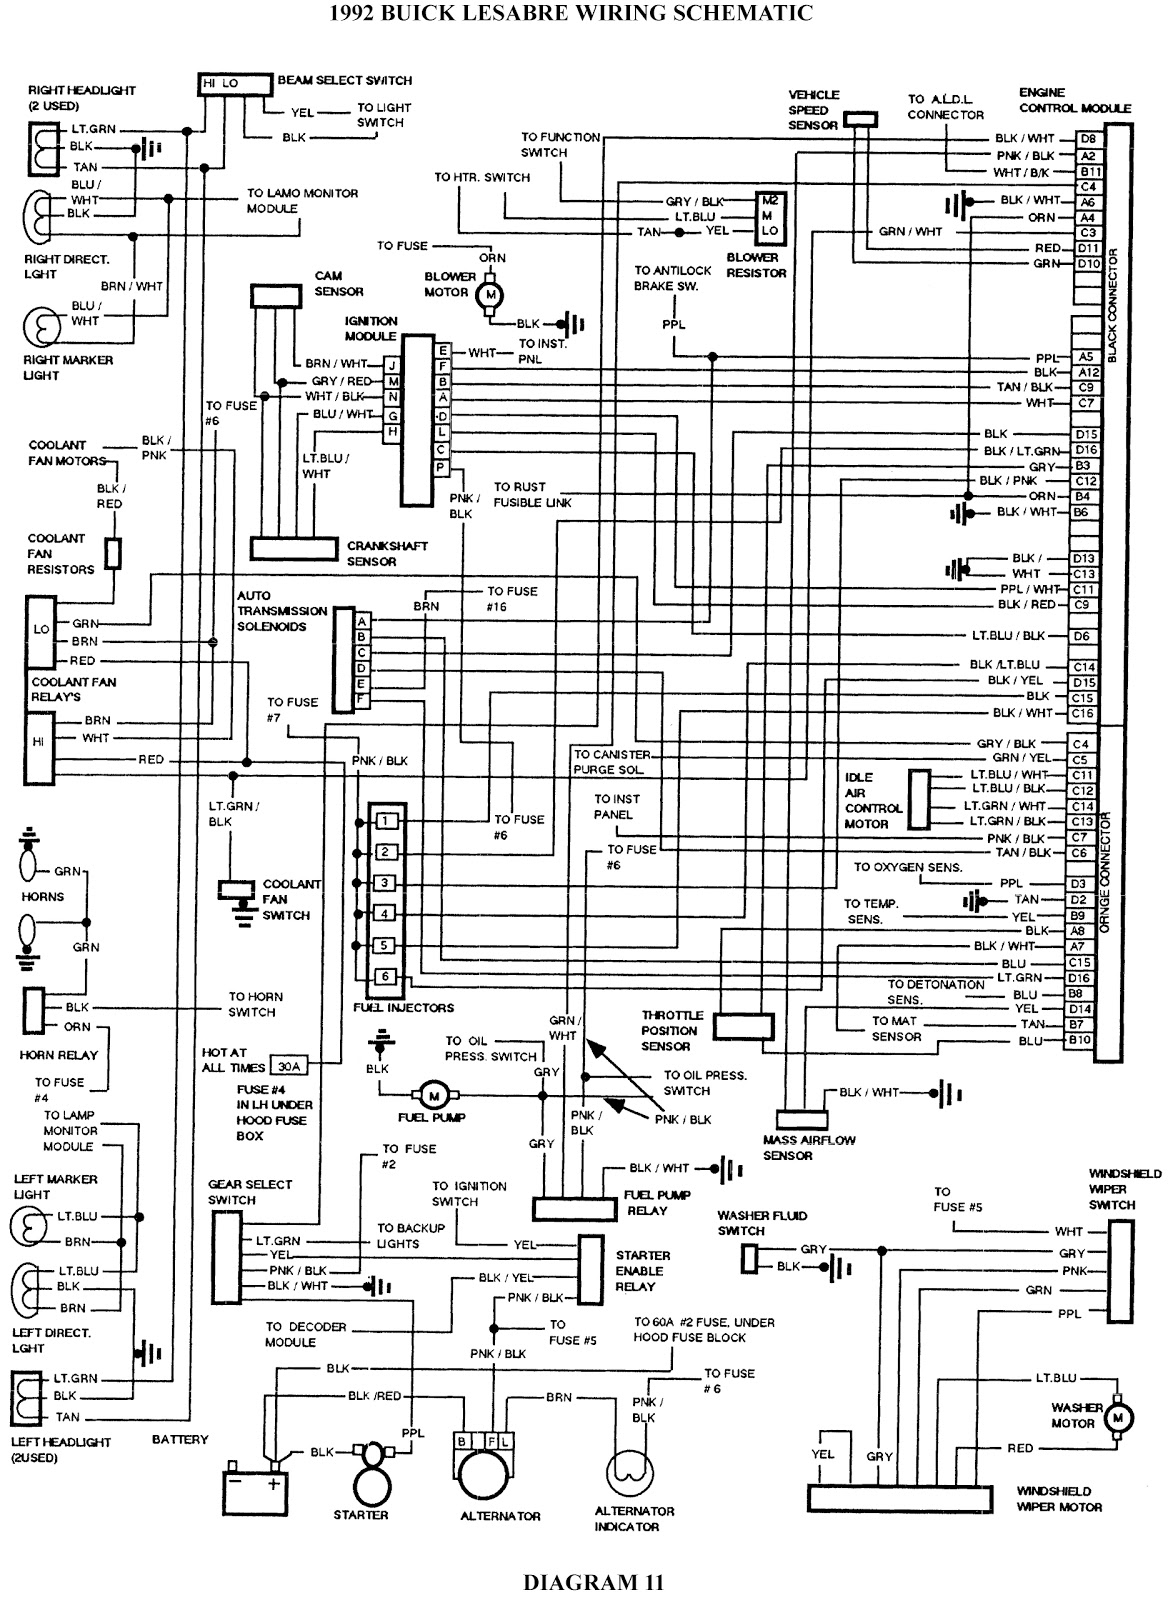 DIAGRAM] 1990 Buick Lesabre Wiring Diagram FULL Version HD Quality Wiring  Diagram - OGZN.ARESTINTORI.ITArestintori.it